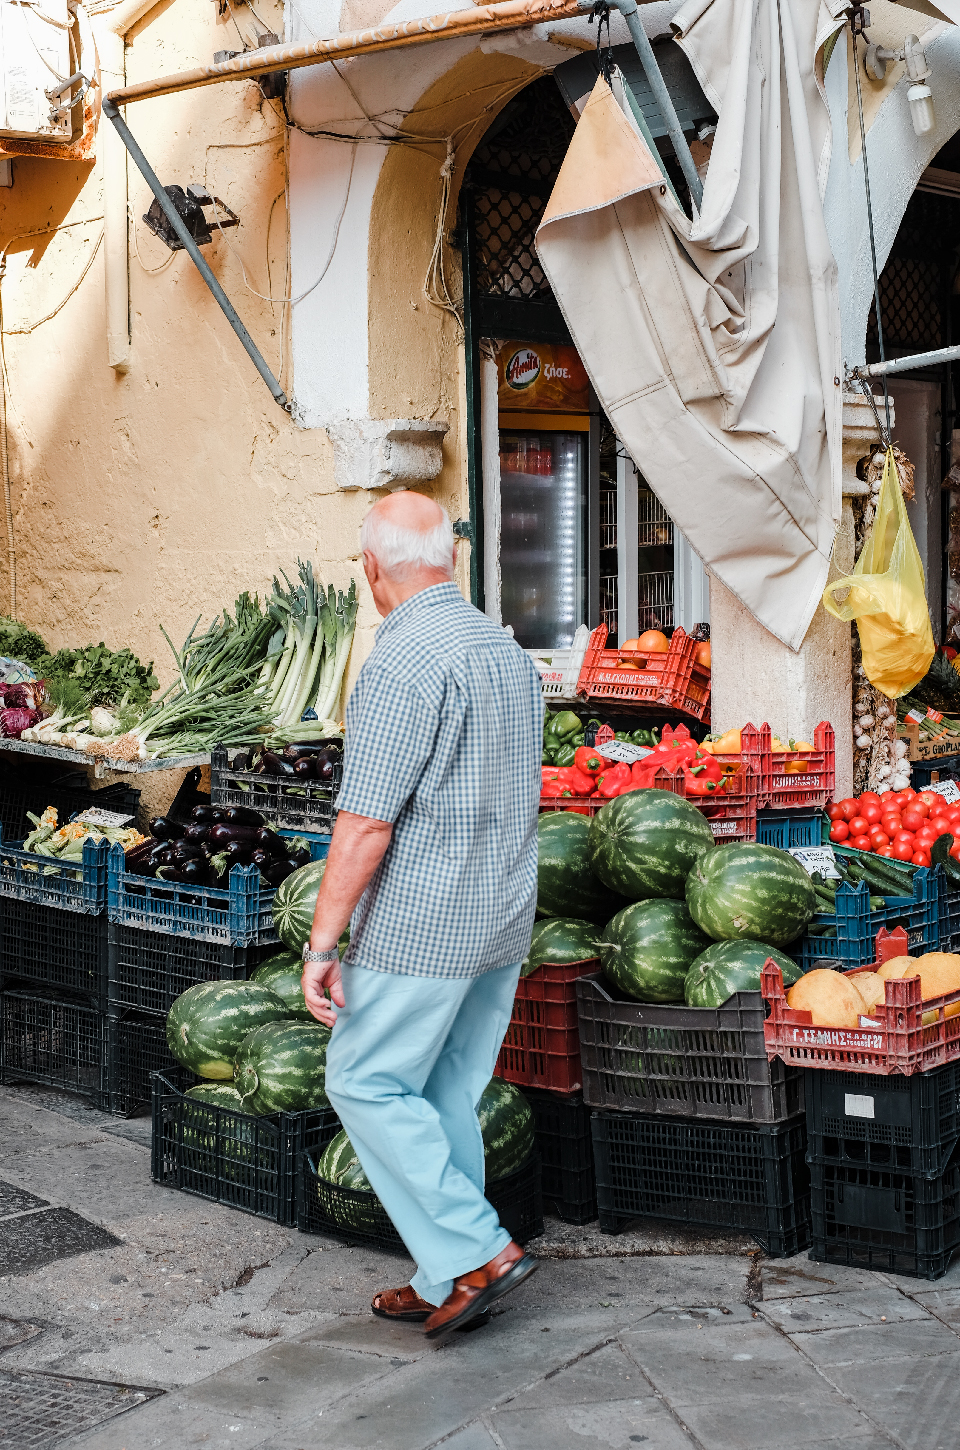 Old man walking infront of a fruit stand in Corfu's old town, weekend in Greece